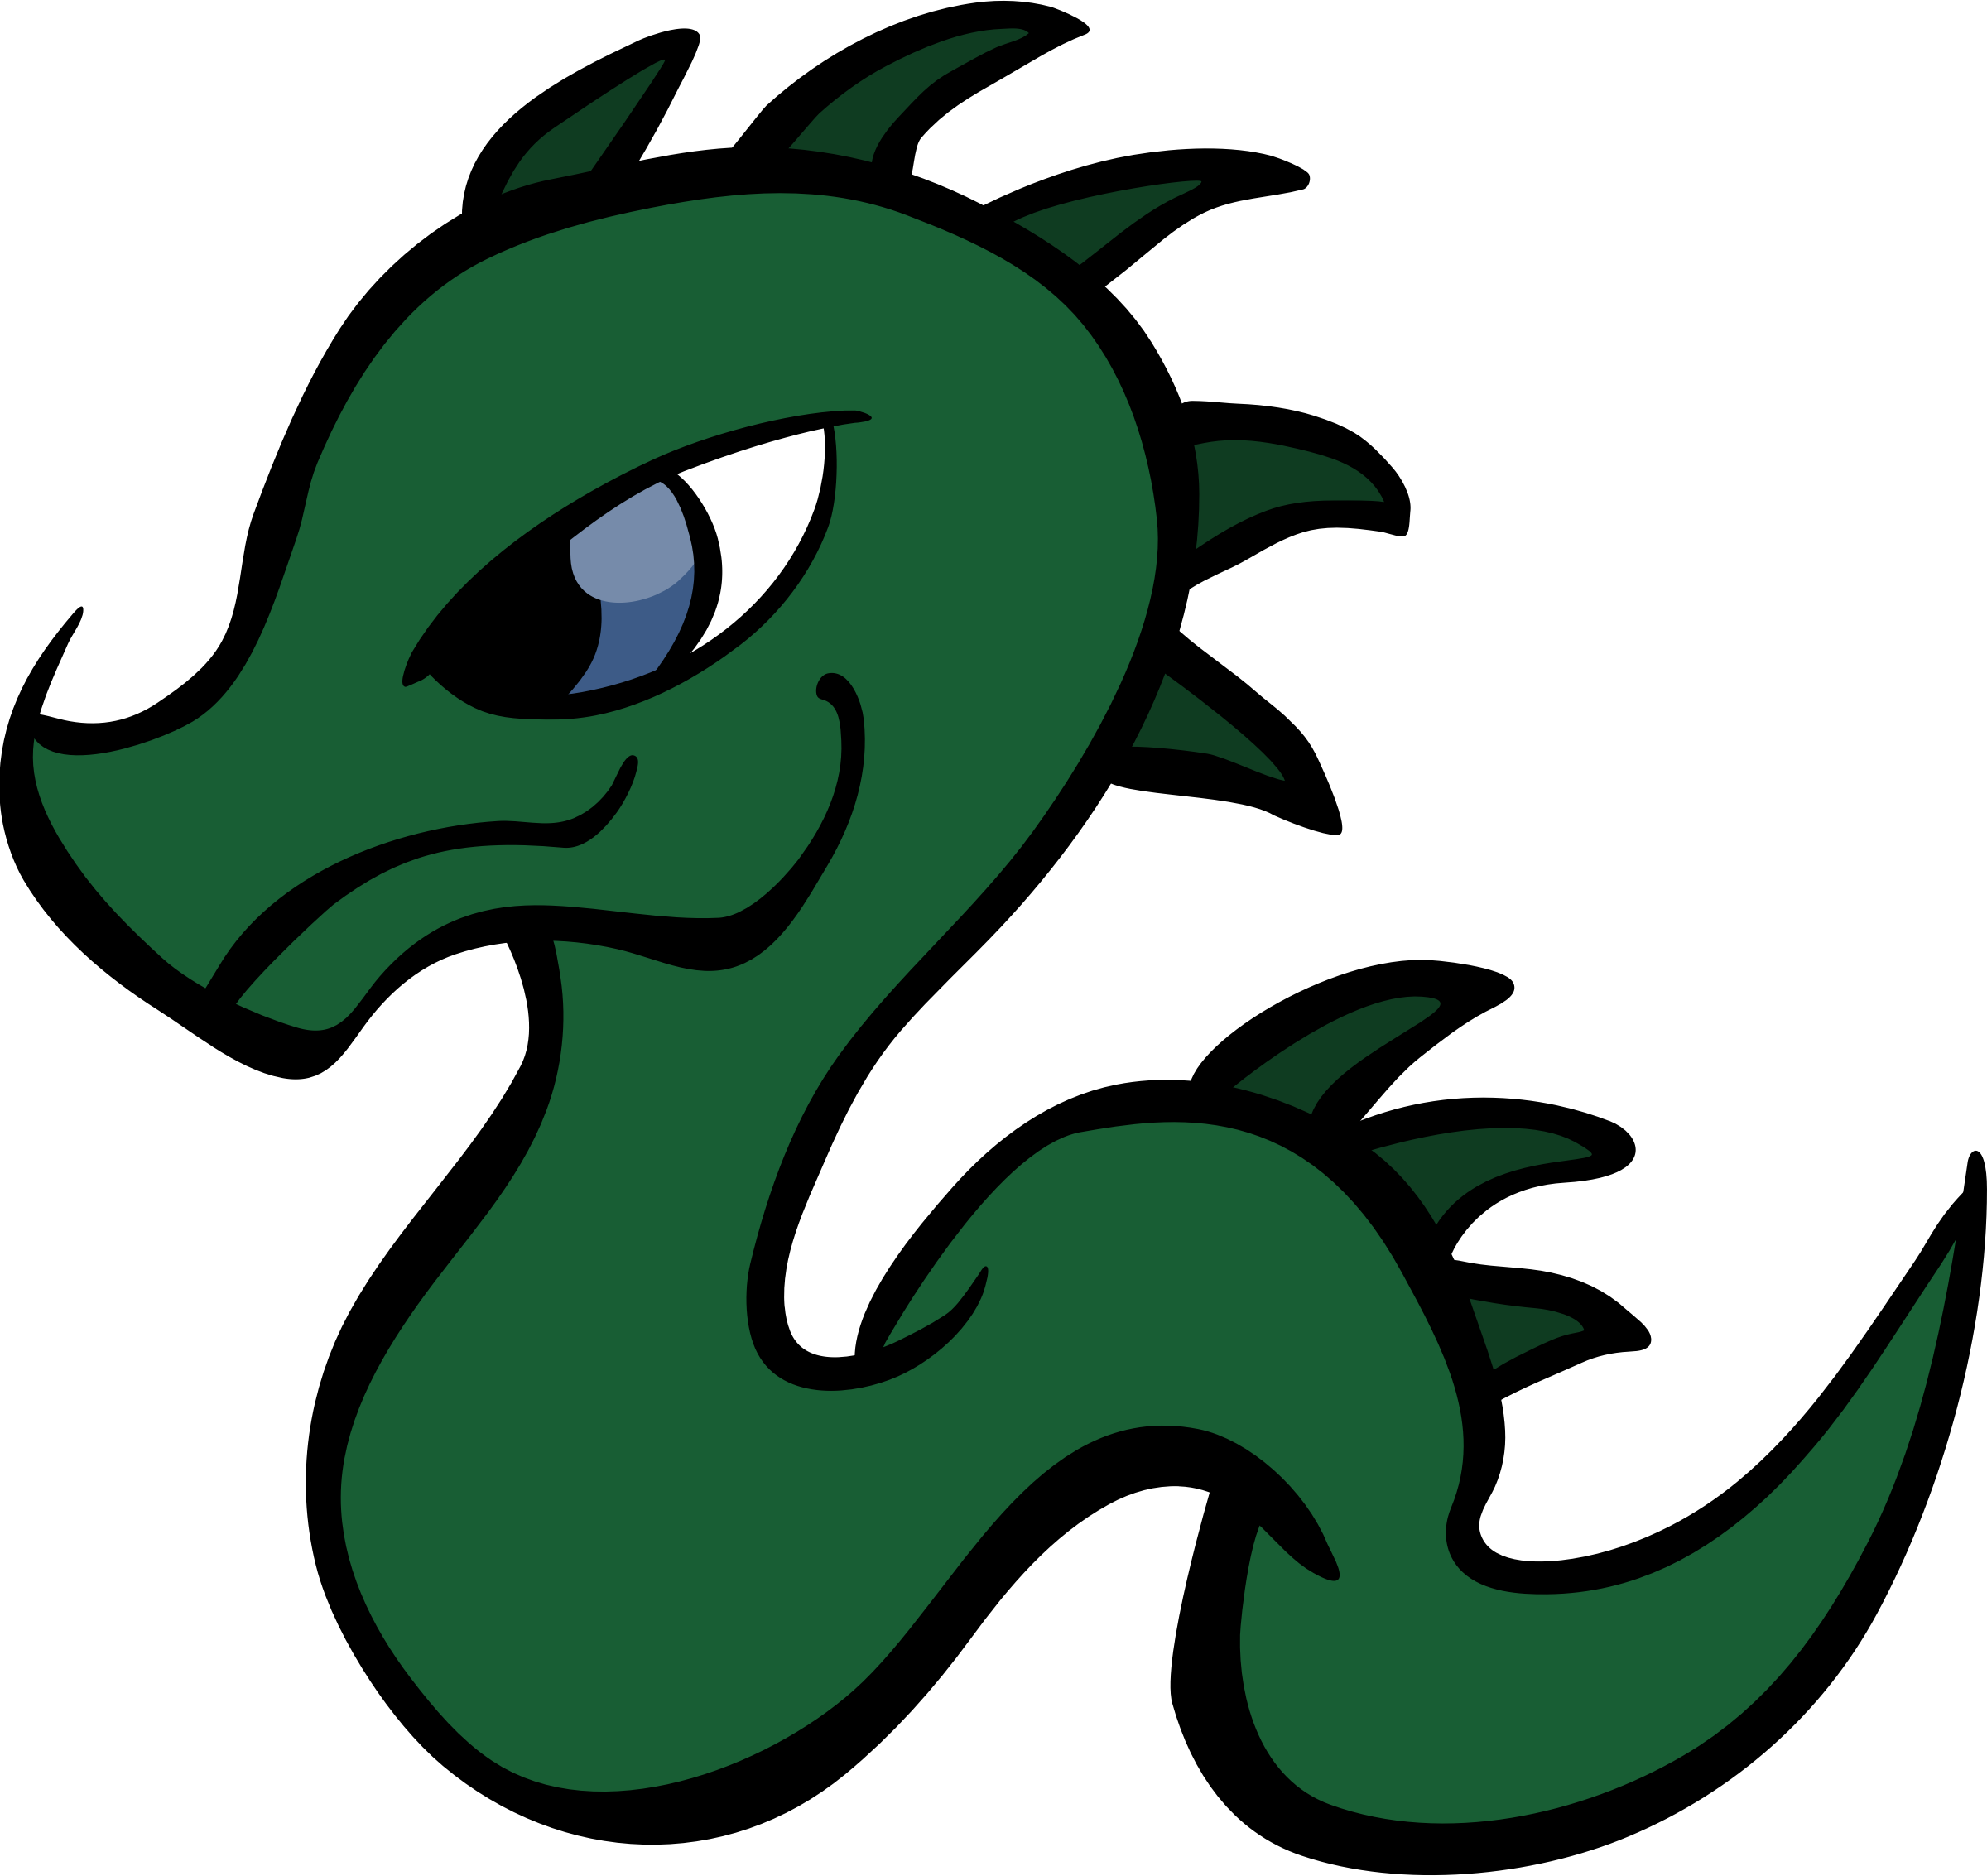 Baby dragon vector clipart free cc0